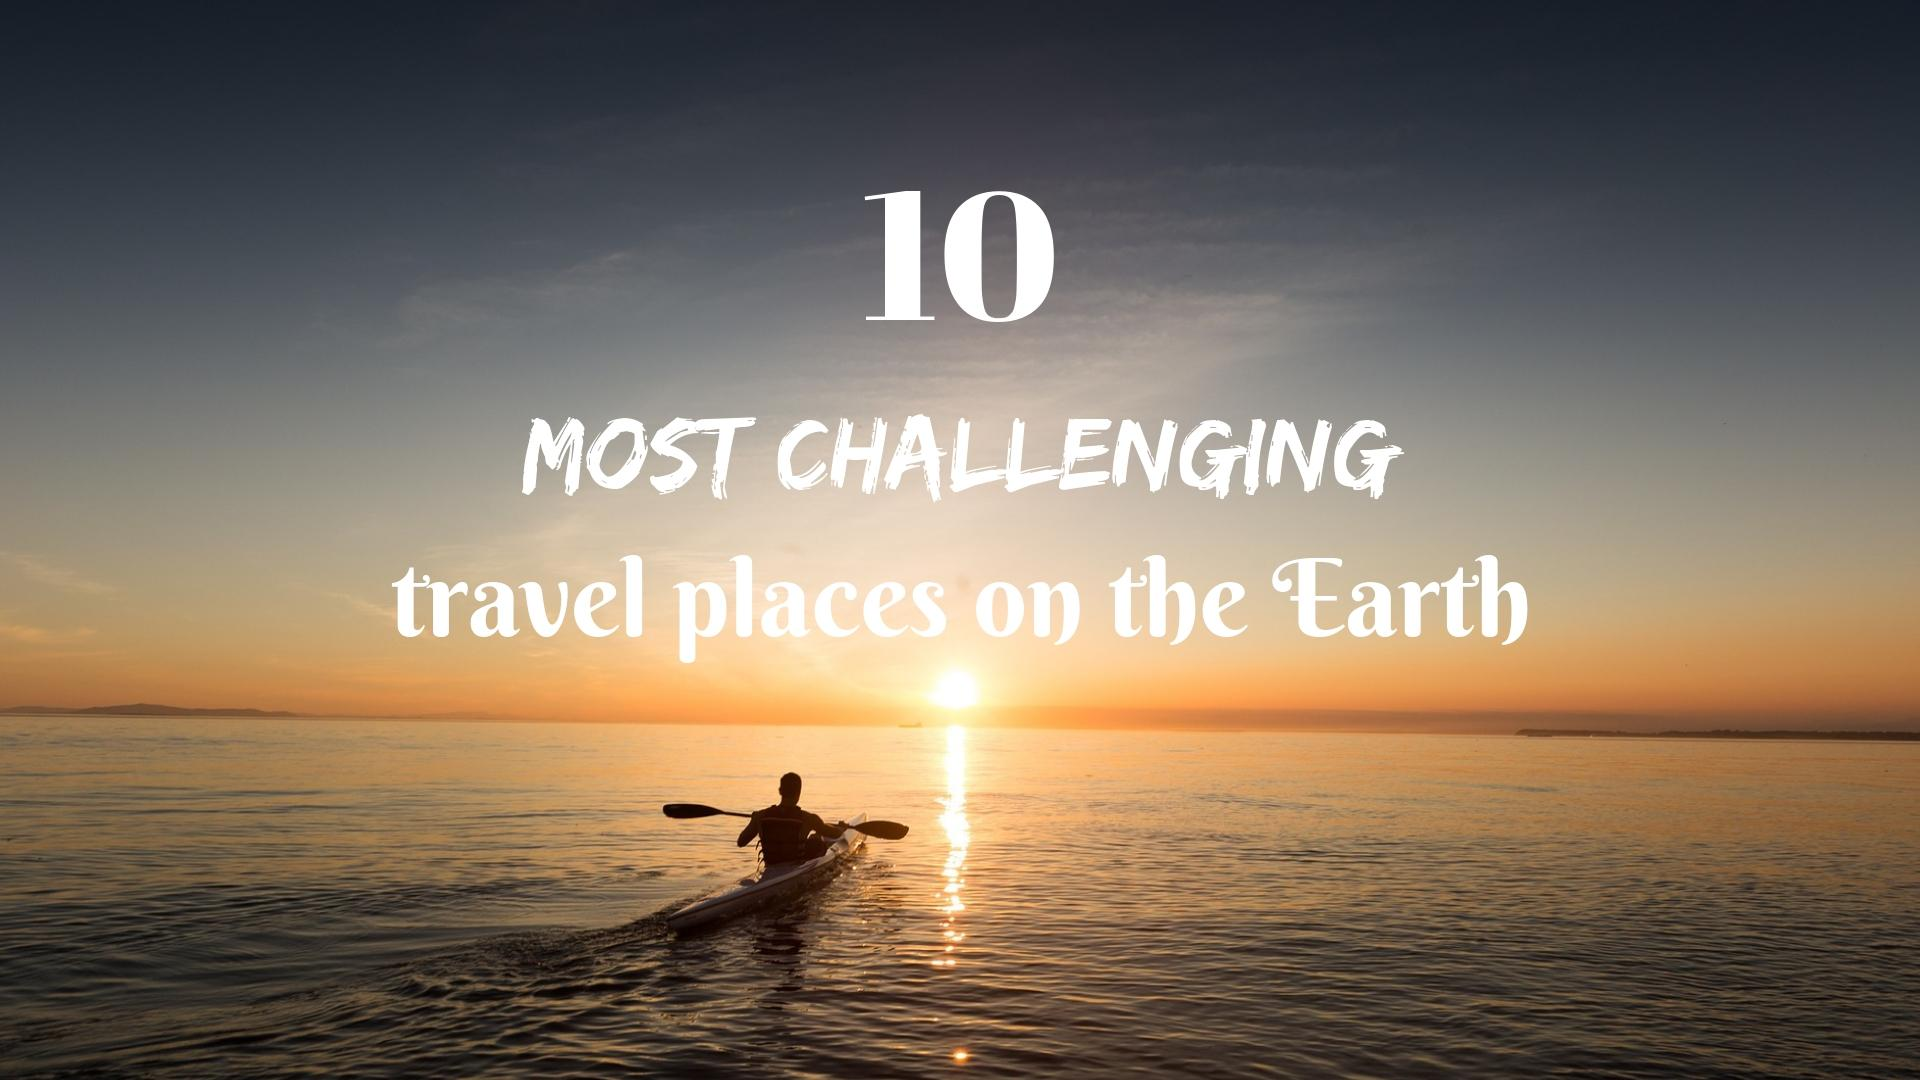 10 most challenging travel places on the Earth